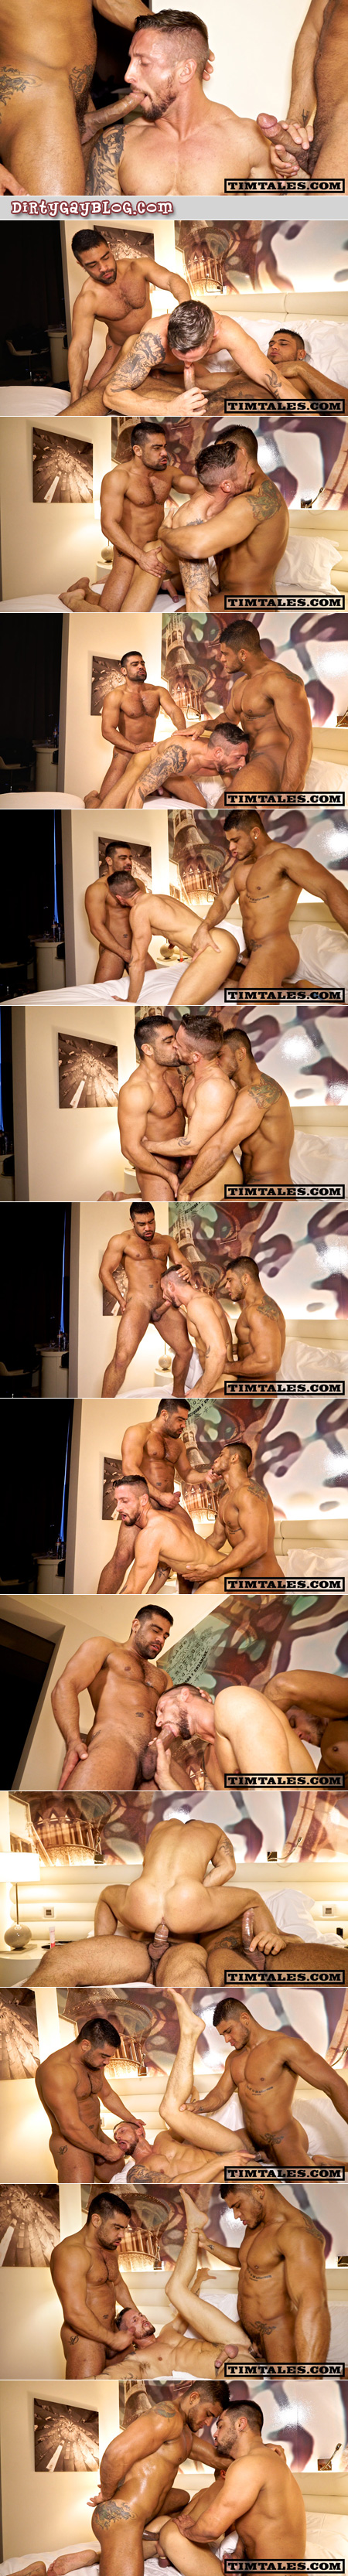 Two Brazilian muscle studs spit-roast a bearded white muscle stud covered with tattoos.